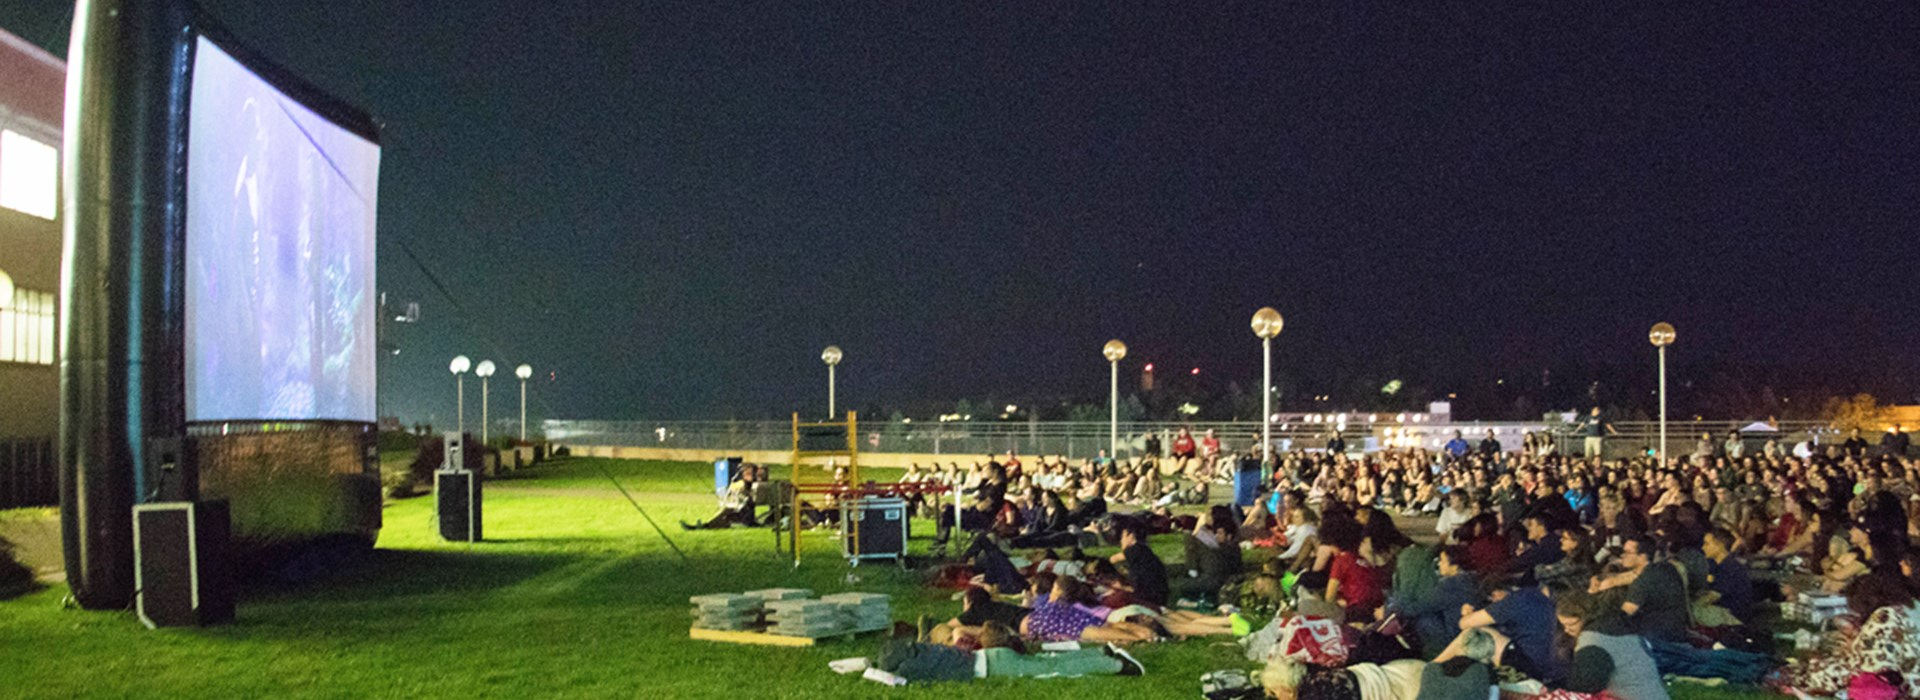 Students watch a movie outdoors on the Terrell Library rooftop